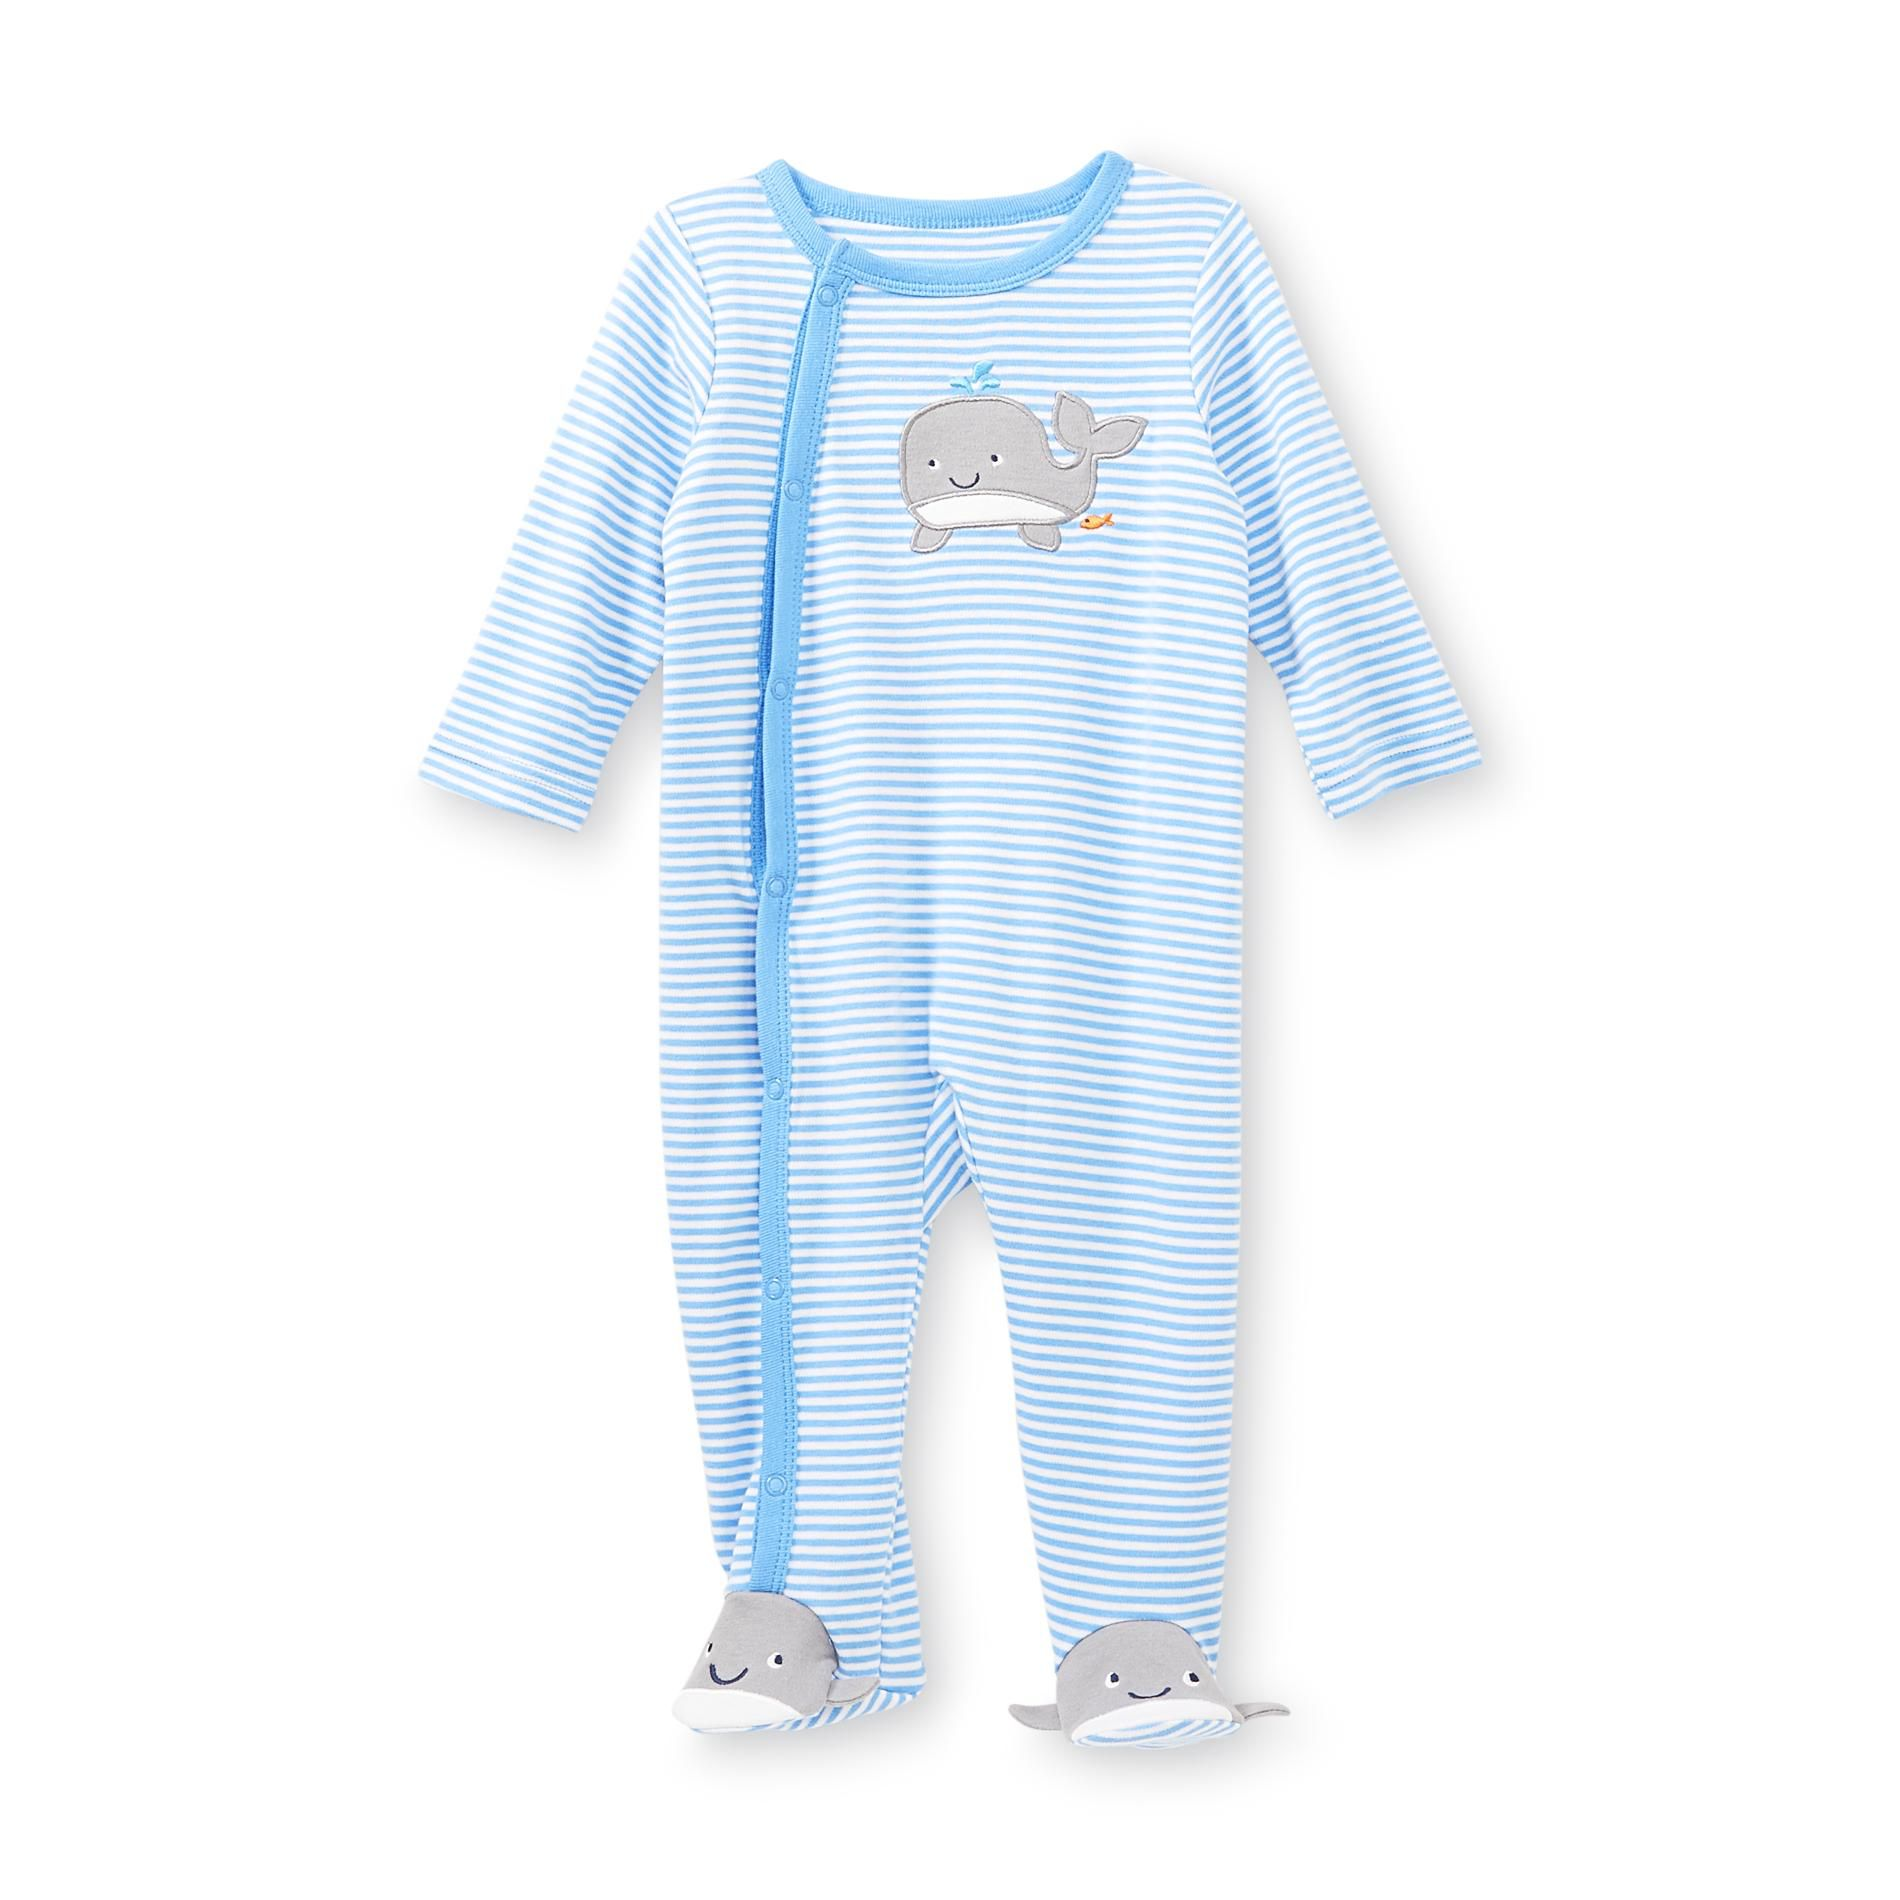 1276bc5e4 Swaddle your little one in these striped newborn boy s footed ...